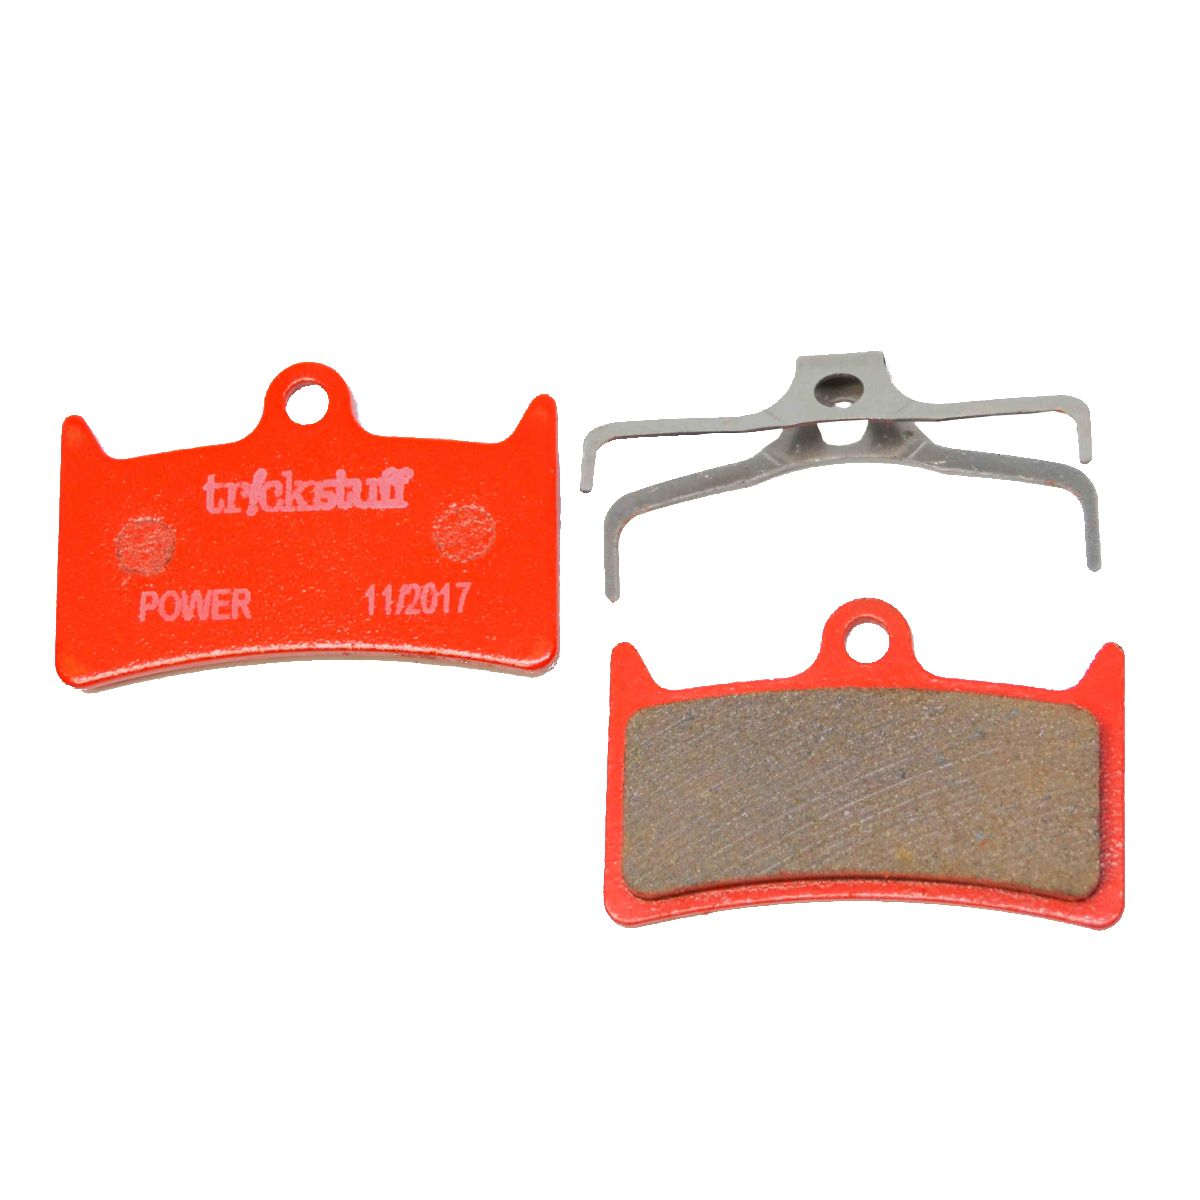 730 Power Disc brake pads for Hope V4 and Trickstuff Maxima